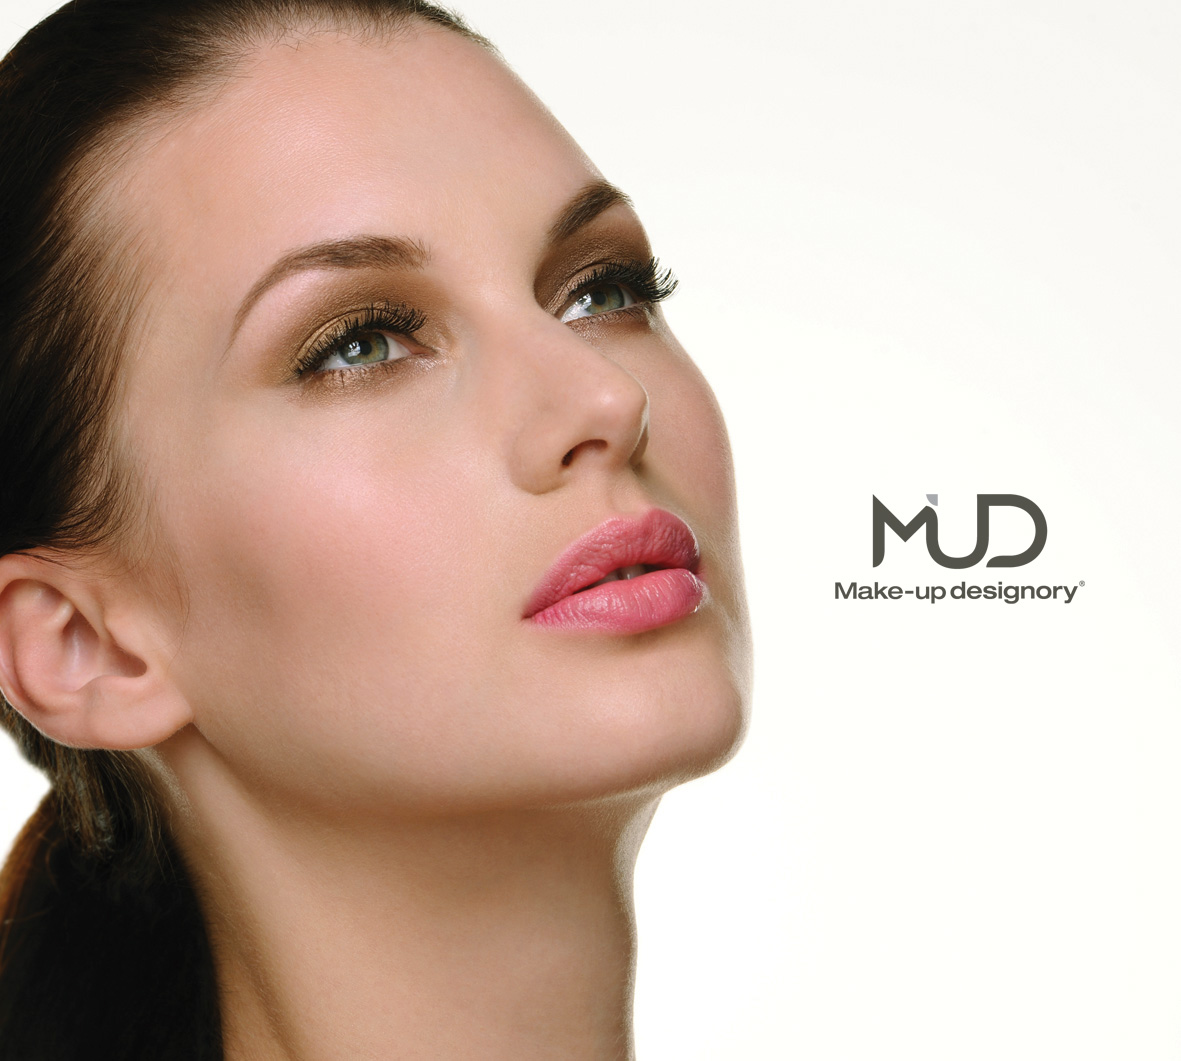 ... even though we can assist with any special occasion make-up you might need. For more information on any other services contact us at the MUD Support ...